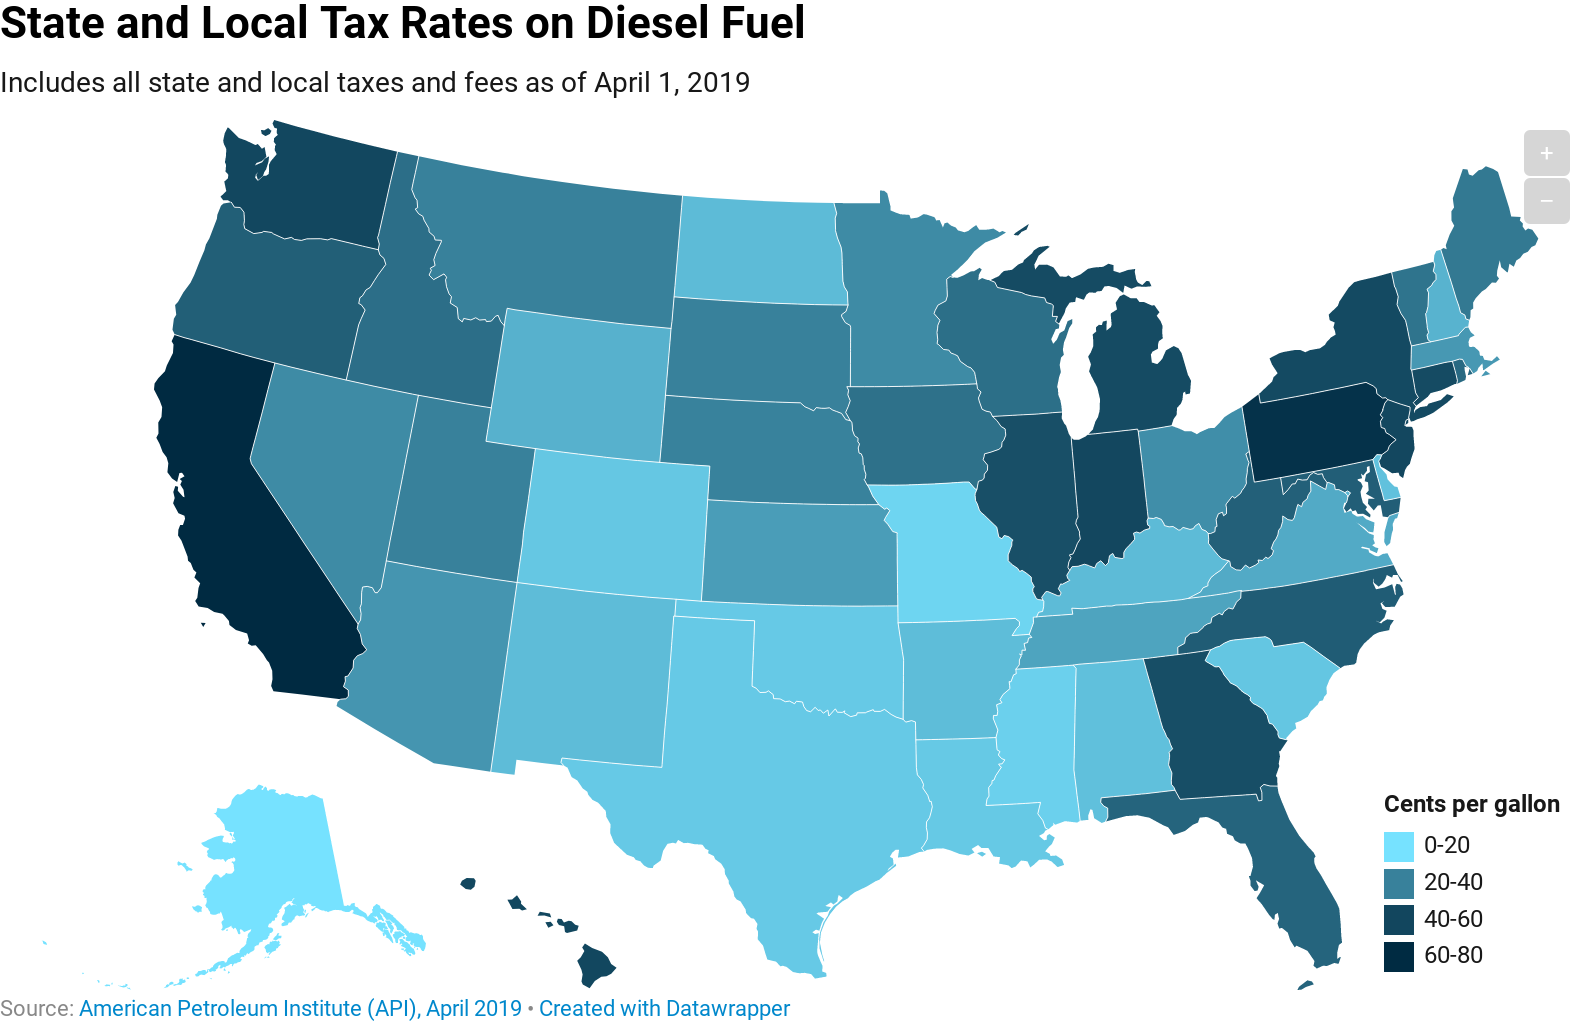 What is the sel Fuel Tax Rate in Your State? – ITEP Sales Tax By State Map on gasoline tax map, california sales tax map, cigarette tax by state map, wa state sales tax map, new york state county map, estate tax by state map, religion by state map, minimum wage by state map, concealed carry reciprocity map, sales tax ohio map, no sales tax states map, 2012 electoral map, state income tax map, property tax by state map, business tax by state map, blue map, racism by state map, gas tax map, educational attainment by state map, sales tax indiana map,